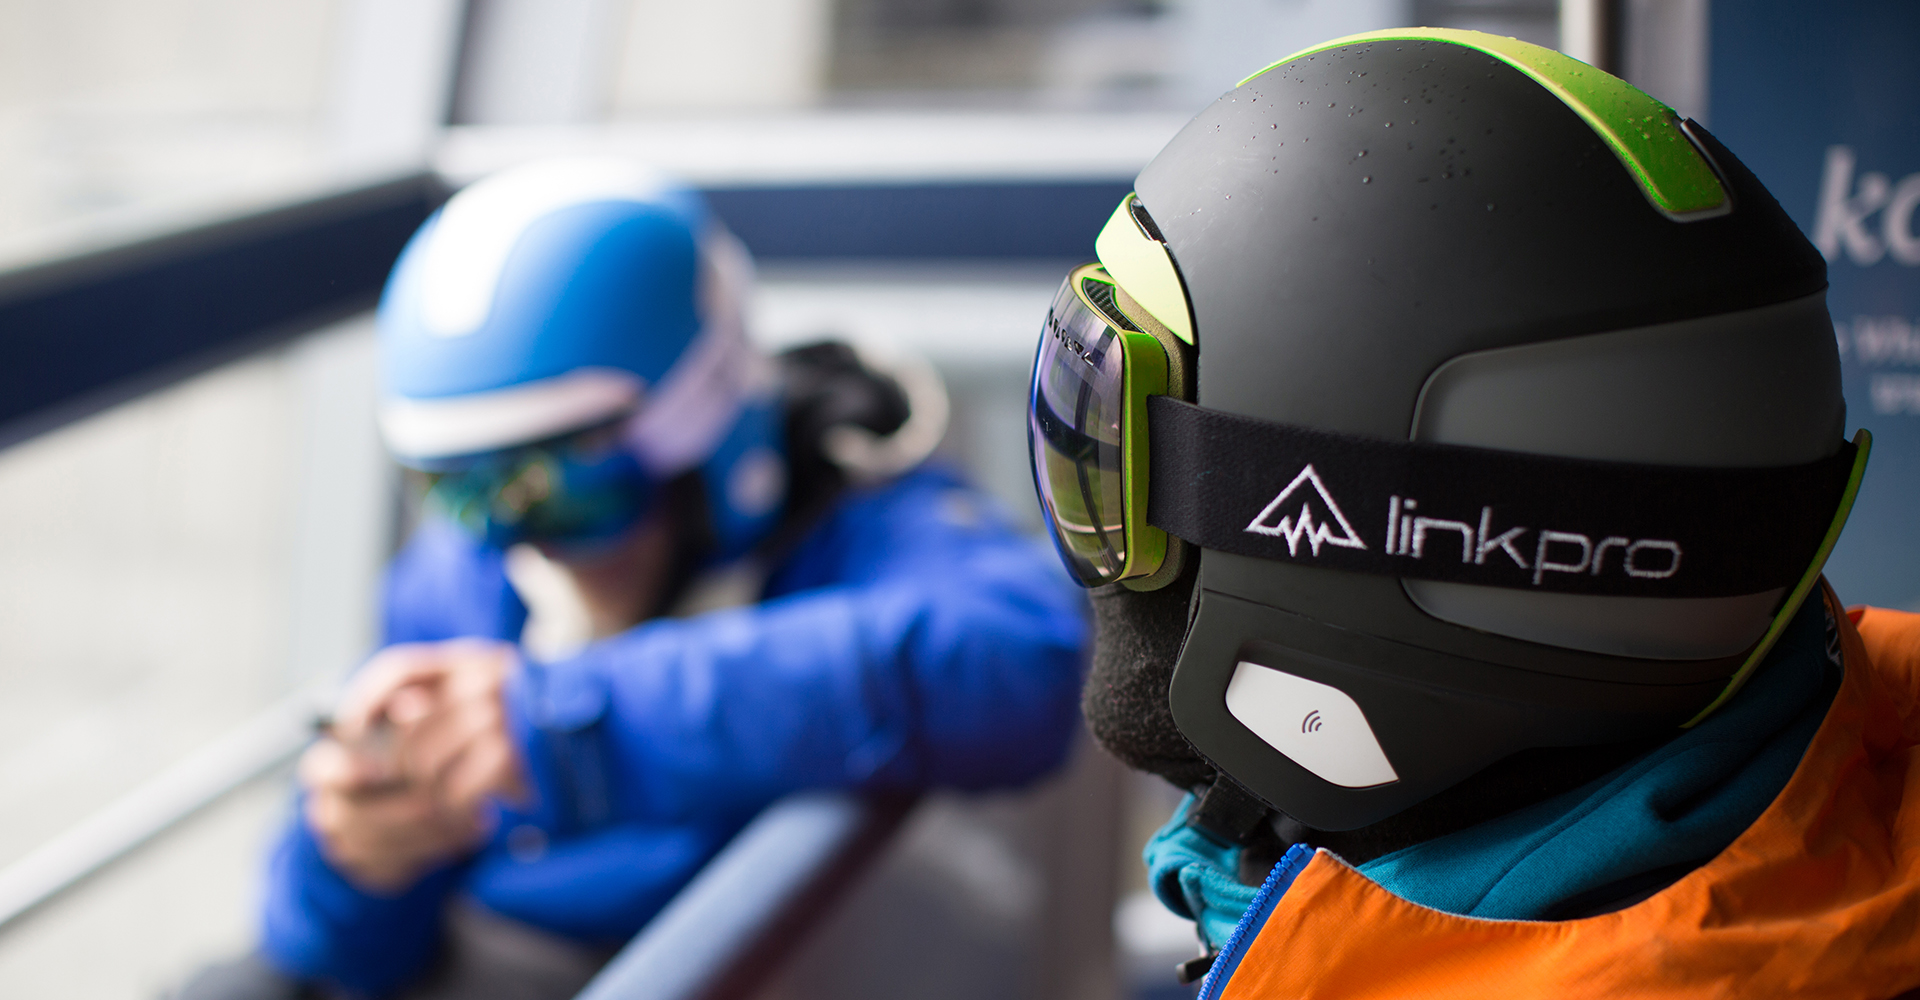 Link Pro - Curventa - In situ - snowboard - helmet - communication - headphones - black helmet - blue helmet